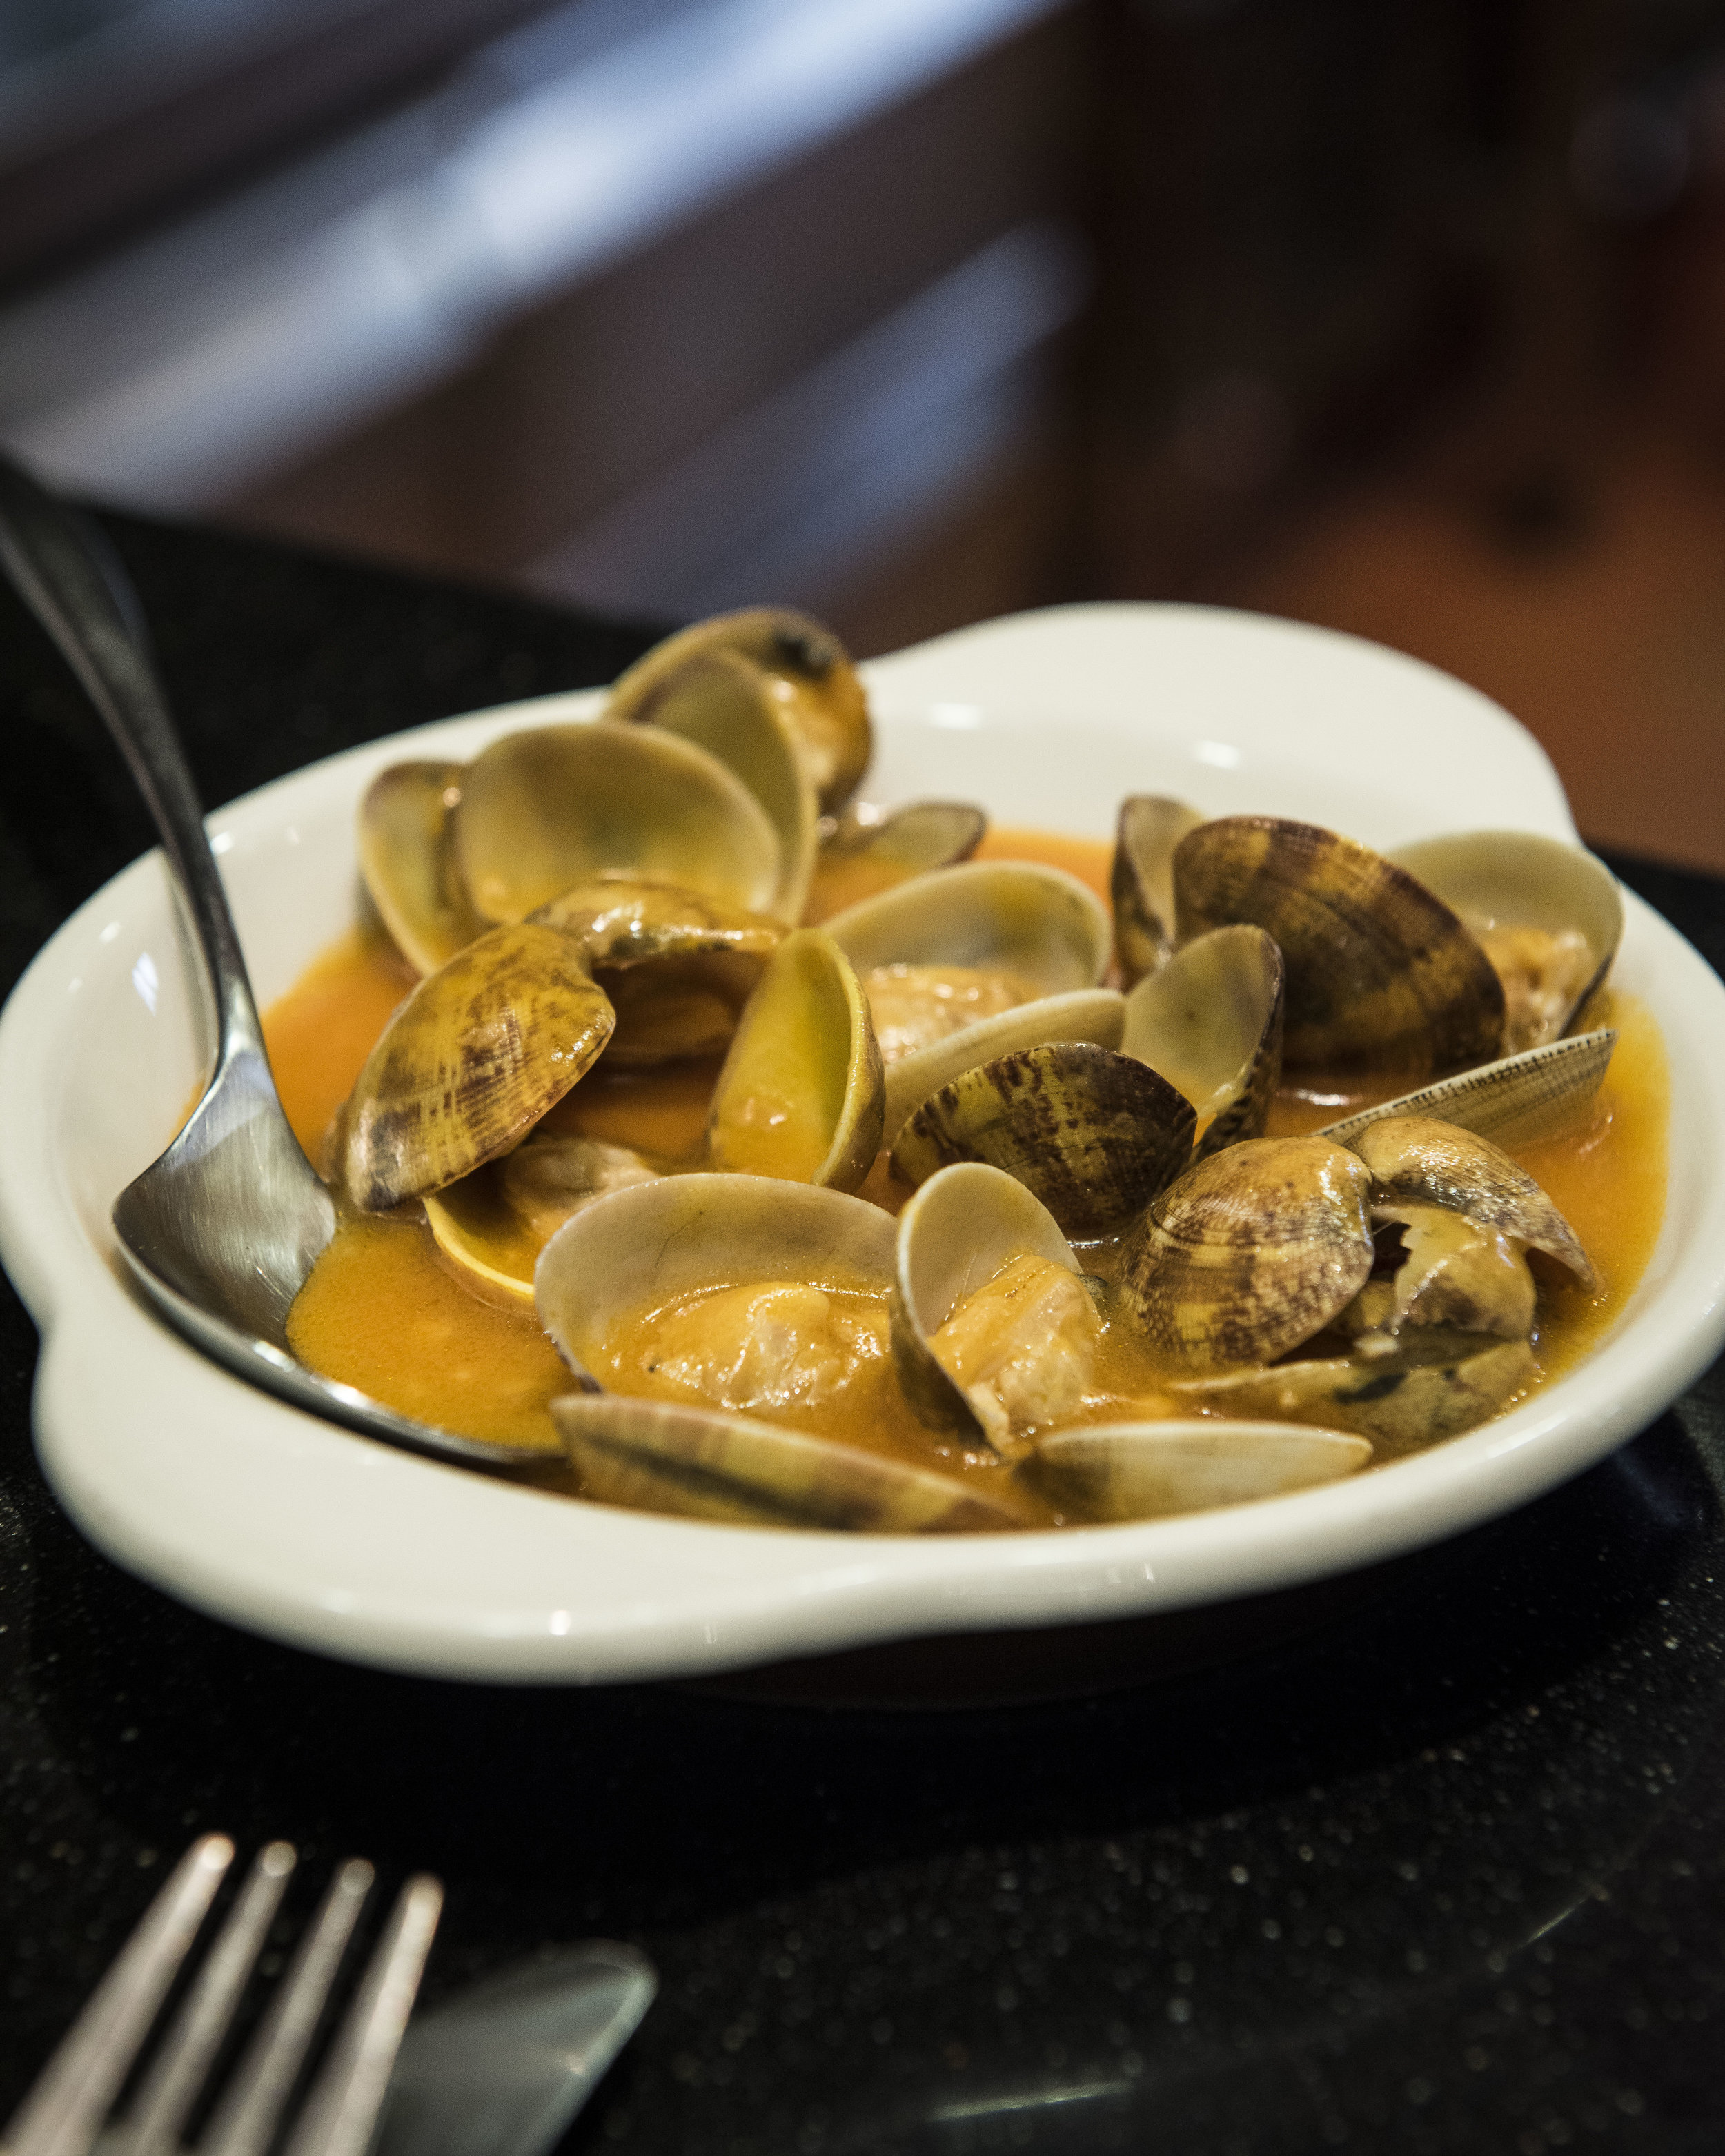 Clams at El Tast de Joan Noi, Barcelona. Photo © Barcelona Food Experience.